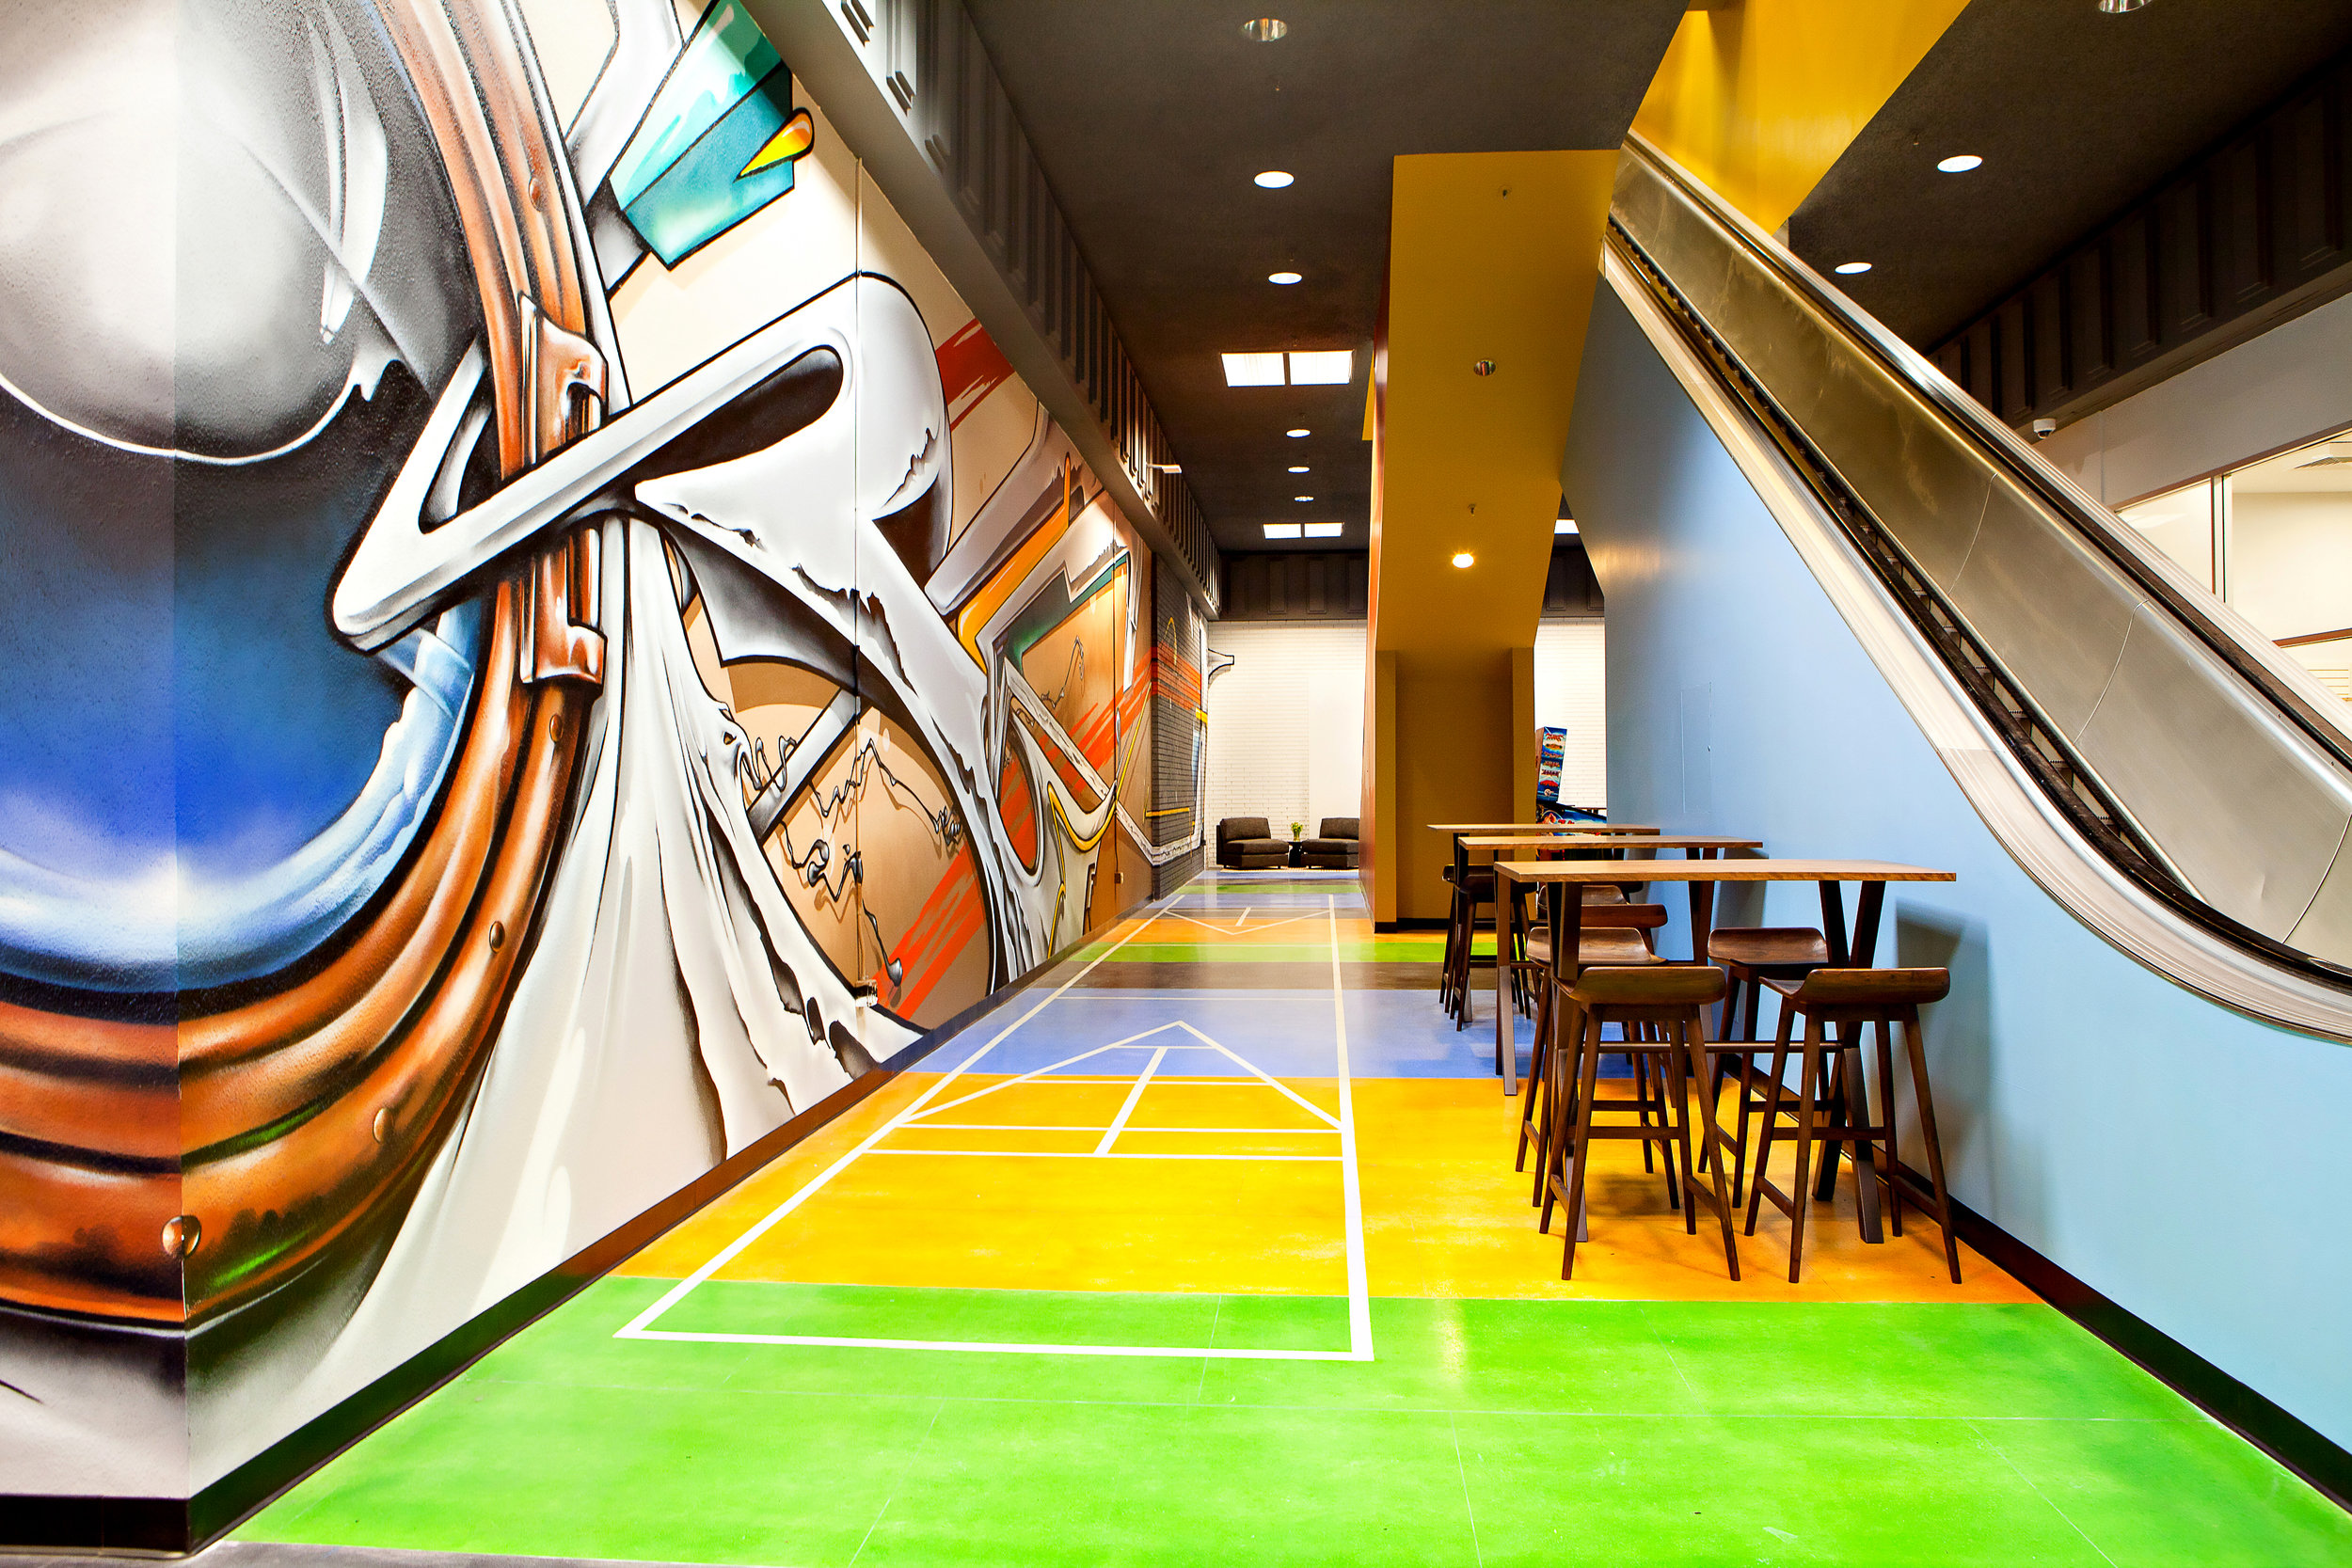 On the first floor, the open co-working space is filled with the articulated 'IceBerg' seating, stripped floors and a dramatic, full wall graffiti mural.